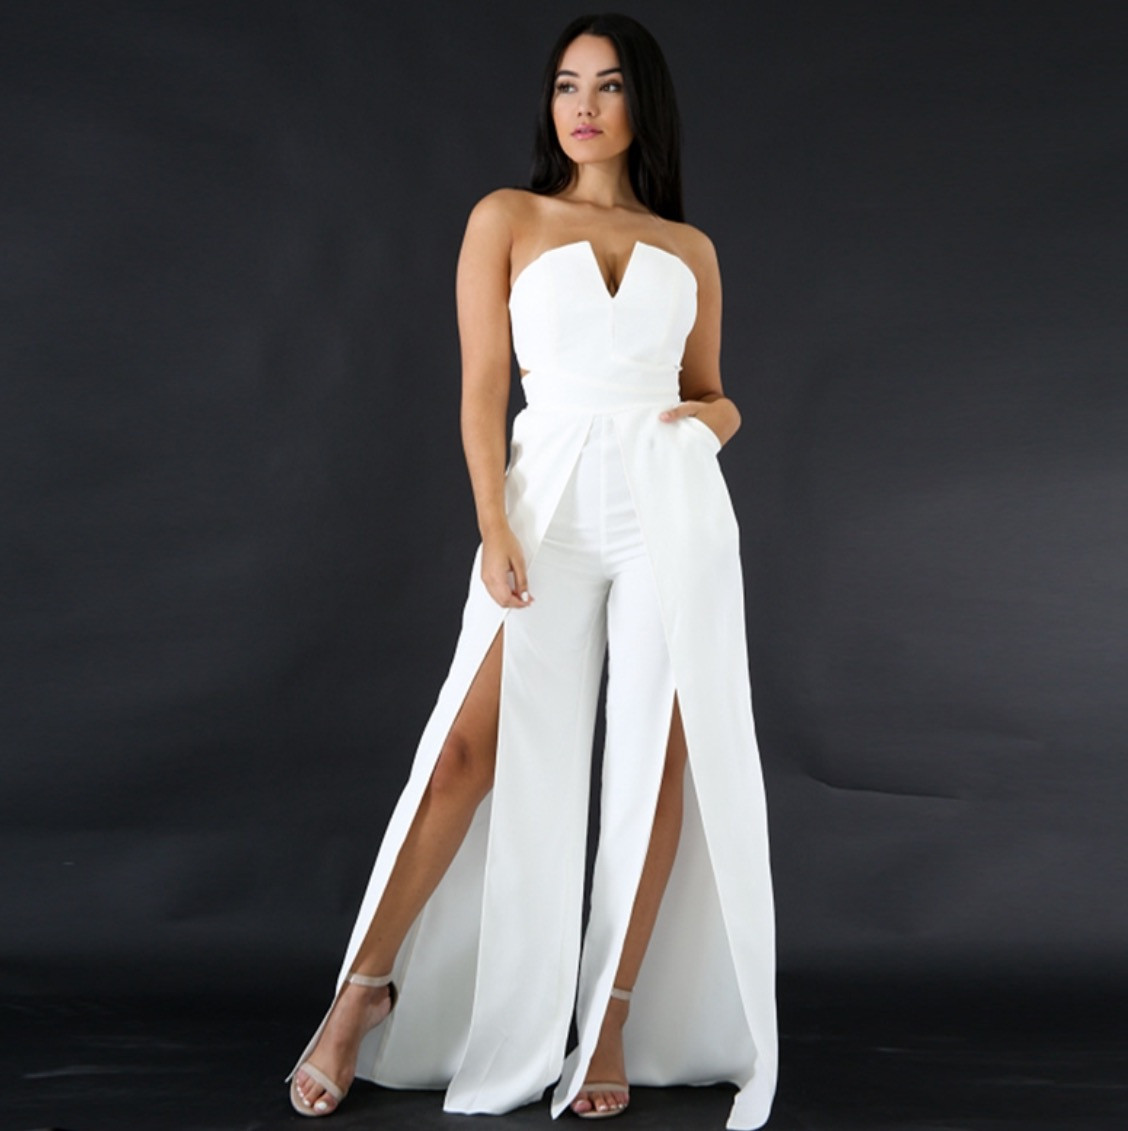 38df9e88027a Petalsfashionz.com Quick shipping low prices women s rompers   jumpsuits  full-length jumpsuit sexy off the shoulder bodycon romper high split  jumpsuit Item ...